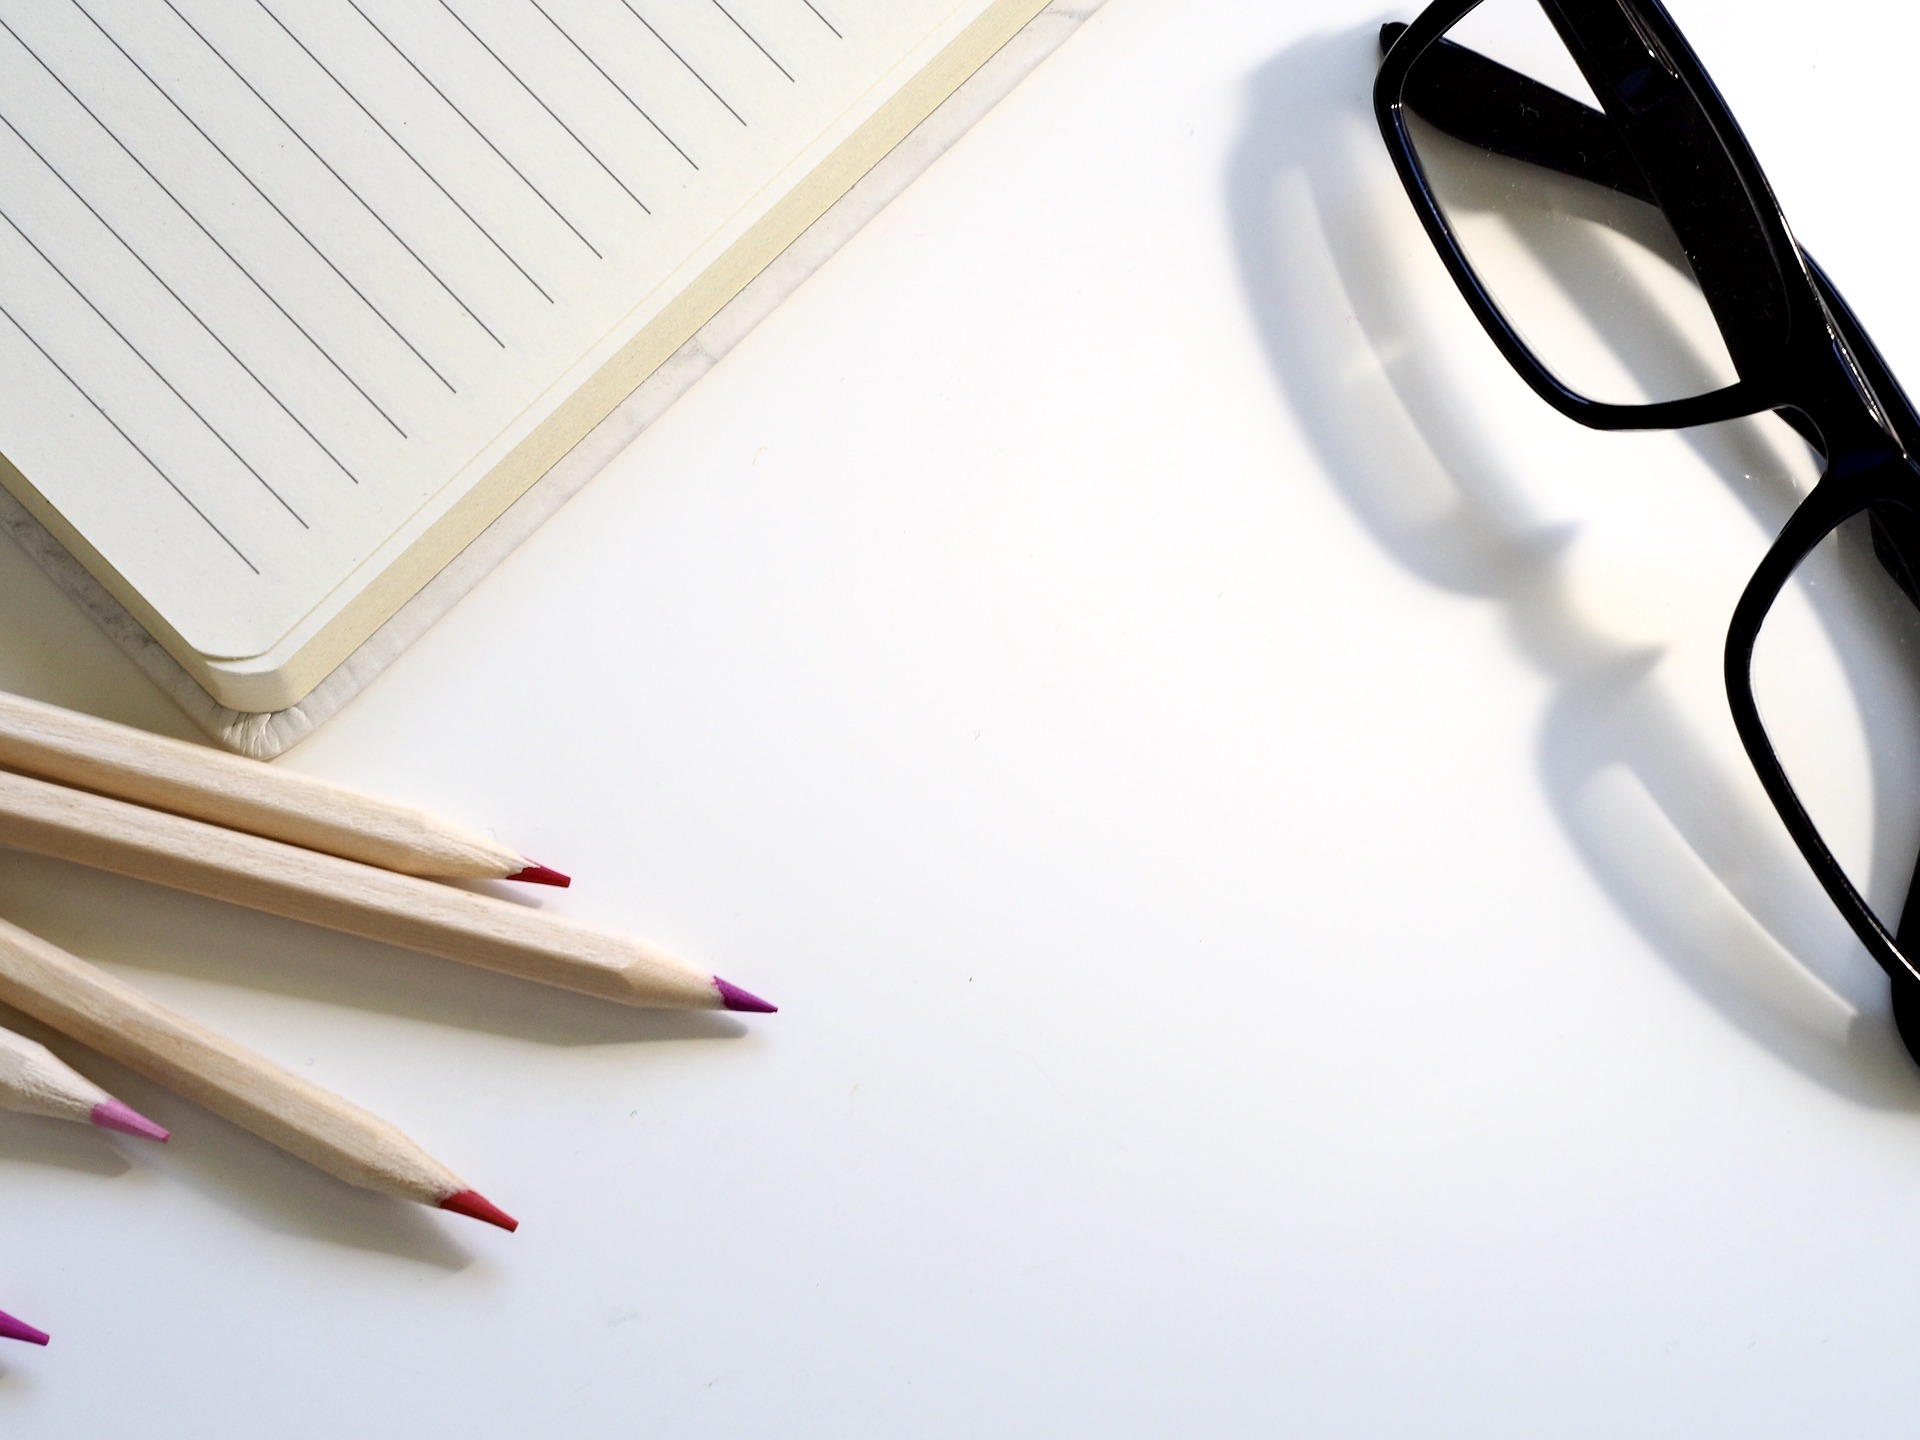 Paper, pencils, and a pair of glasses (symbolizing content writing)